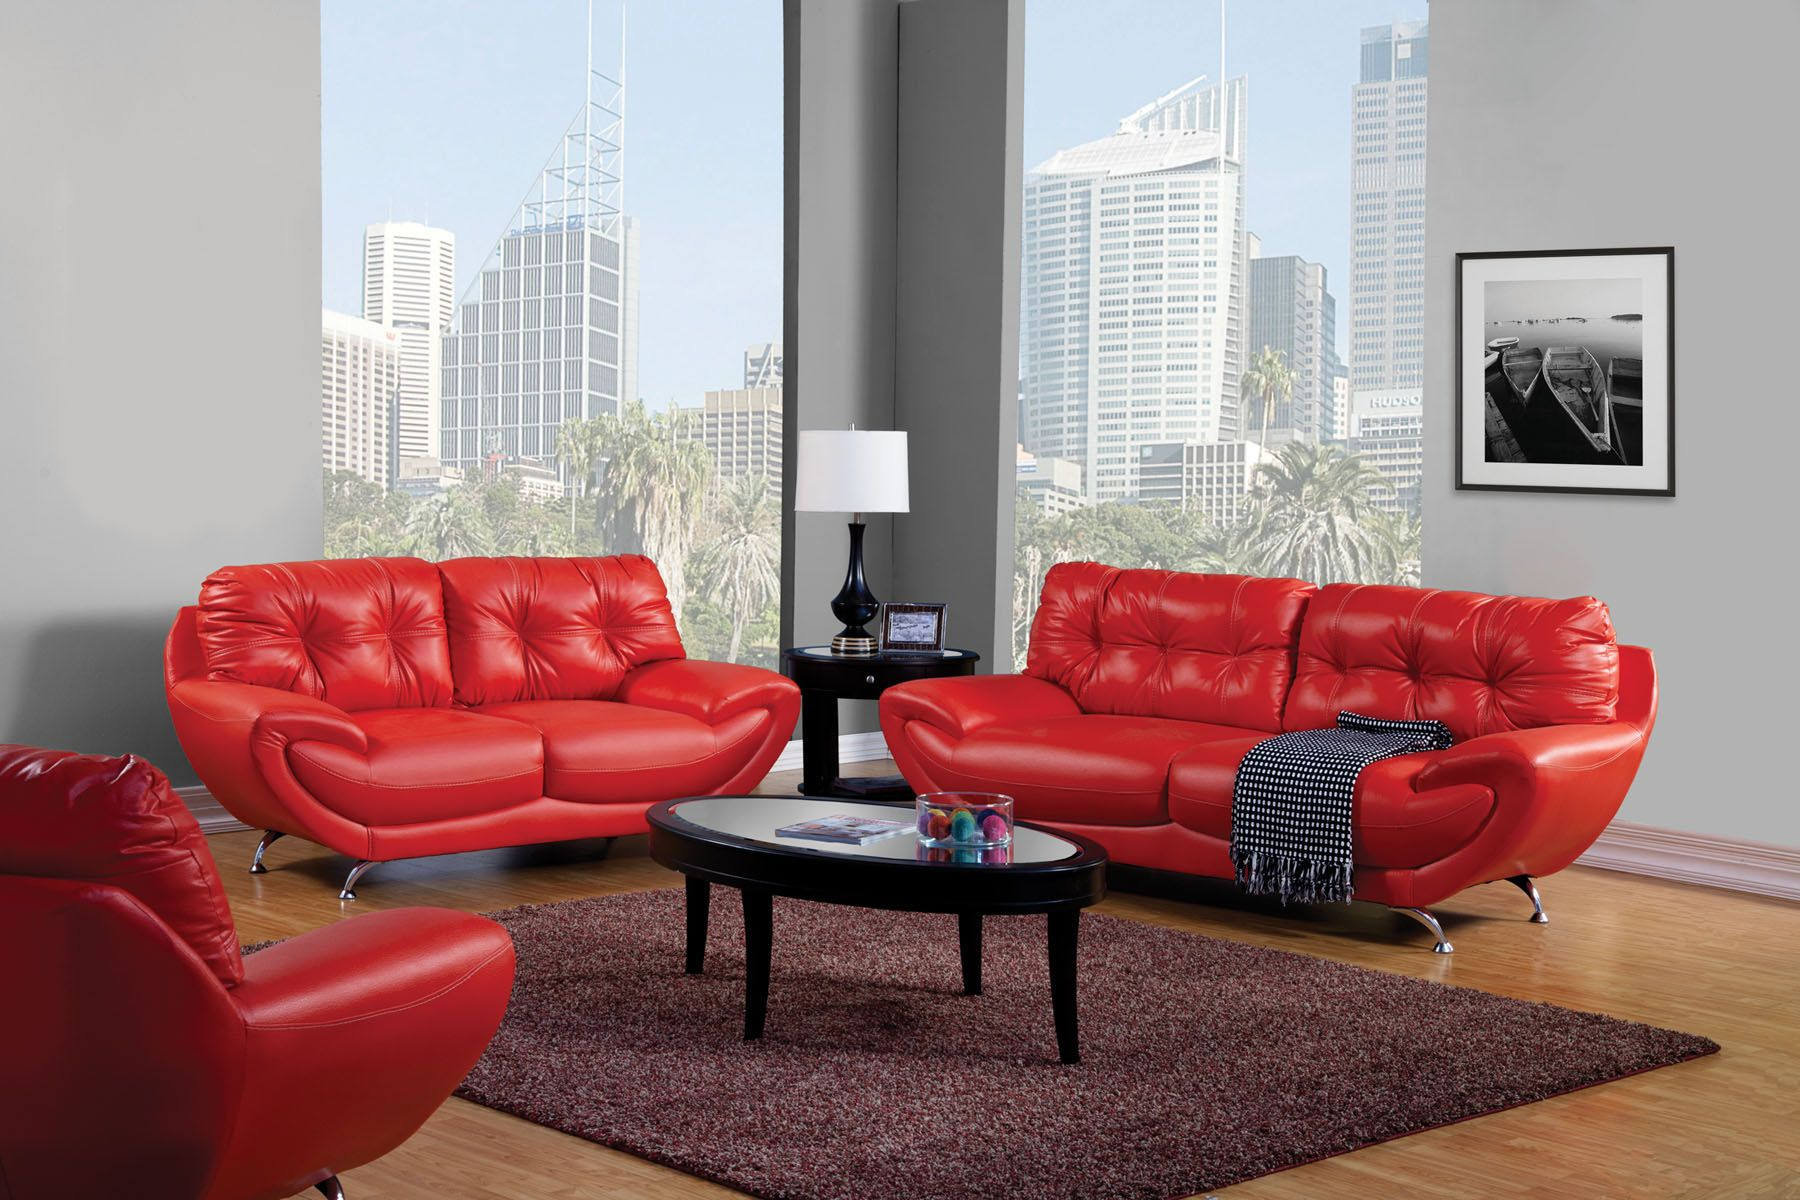 Living Room Furnishings And Design Awesome Red And Black Leather Living Room Furniture  Leather Living Rooms Design Inspiration